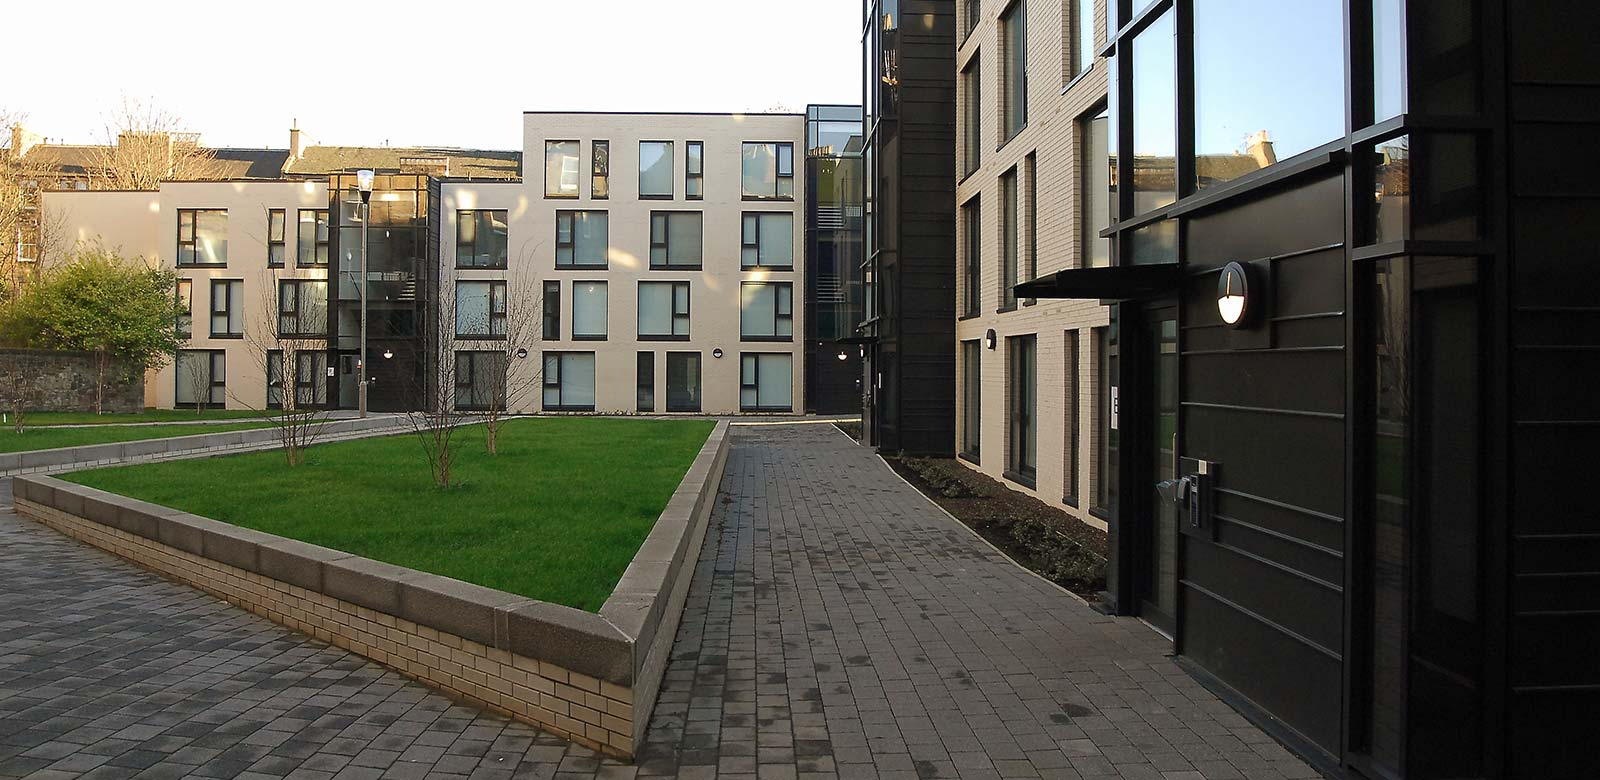 cs-gateway-edinburgh-slider-4.jpg